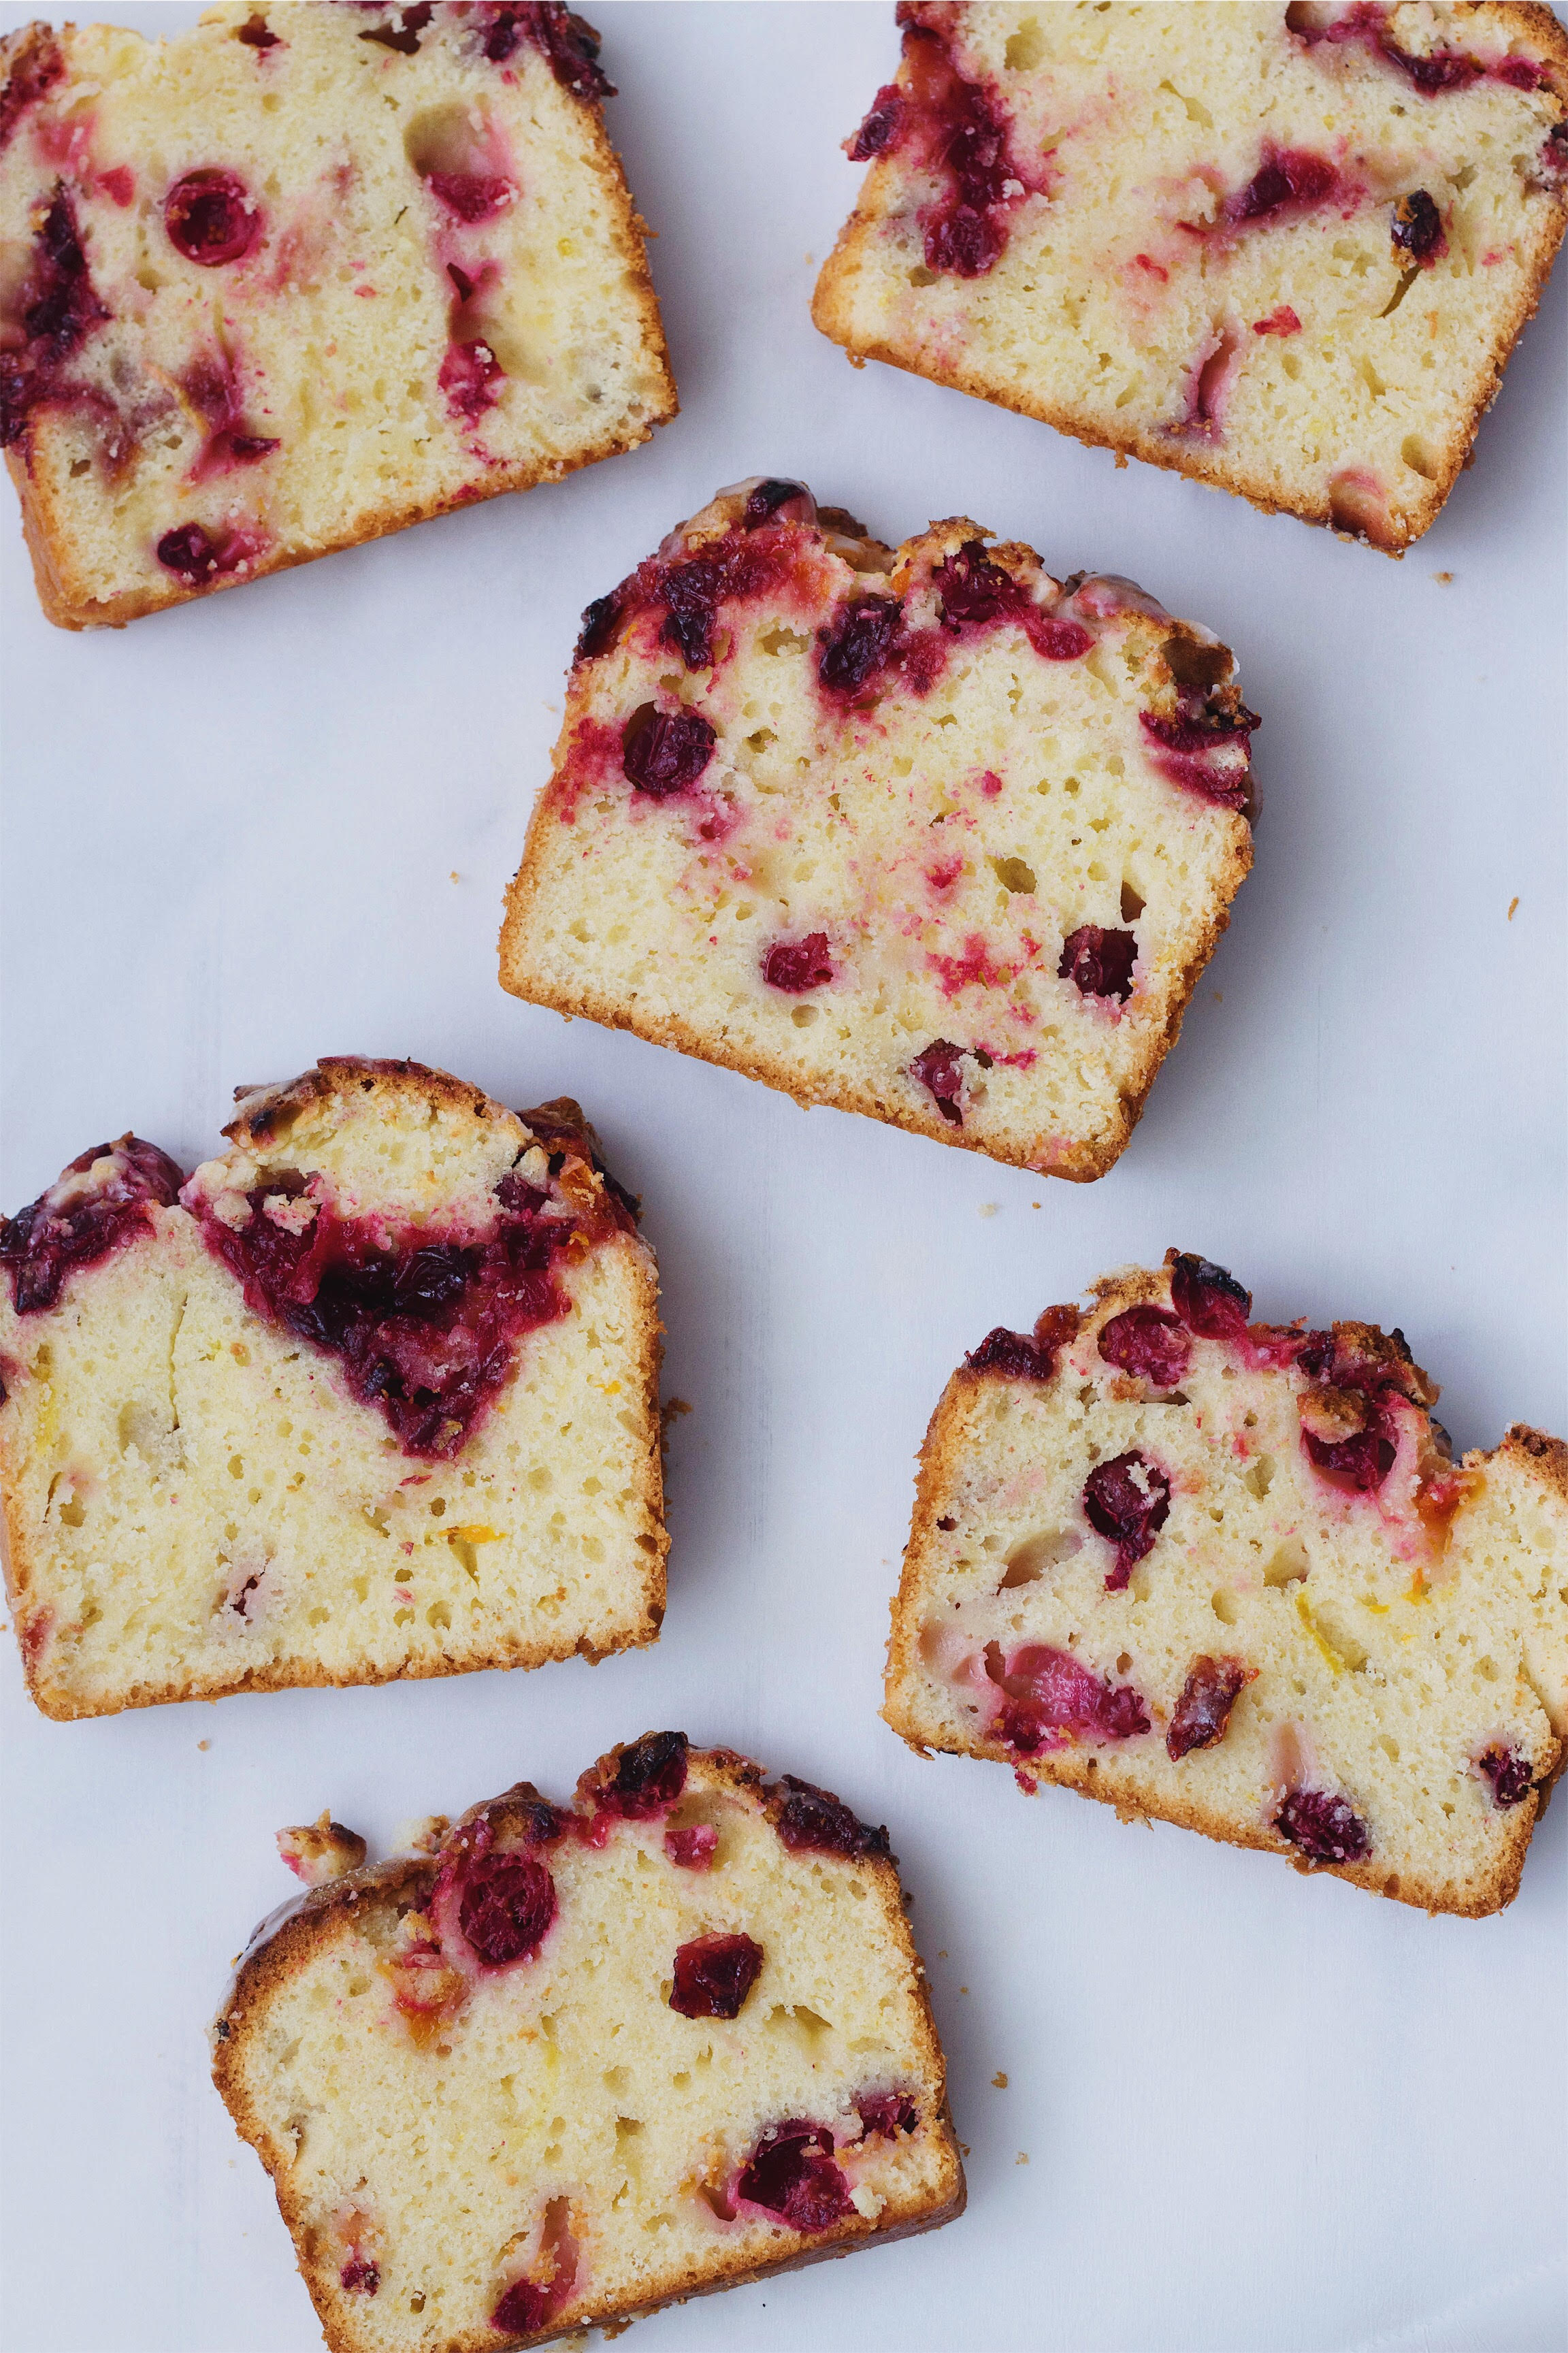 Cranberry Clementine Jam Pound Cake